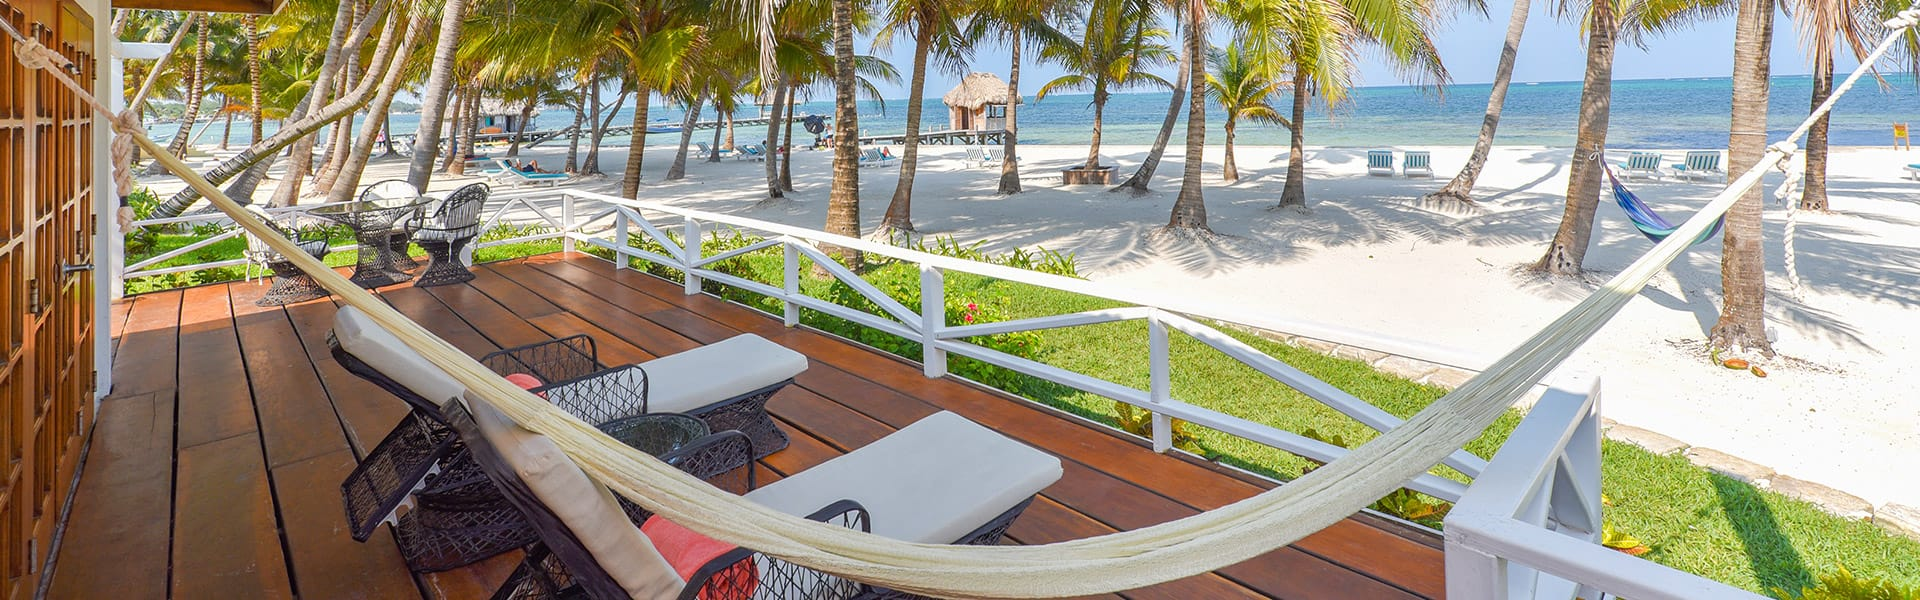 The Rainforest Suite's private veranda at Victoria House Resort and Spa, Belize.